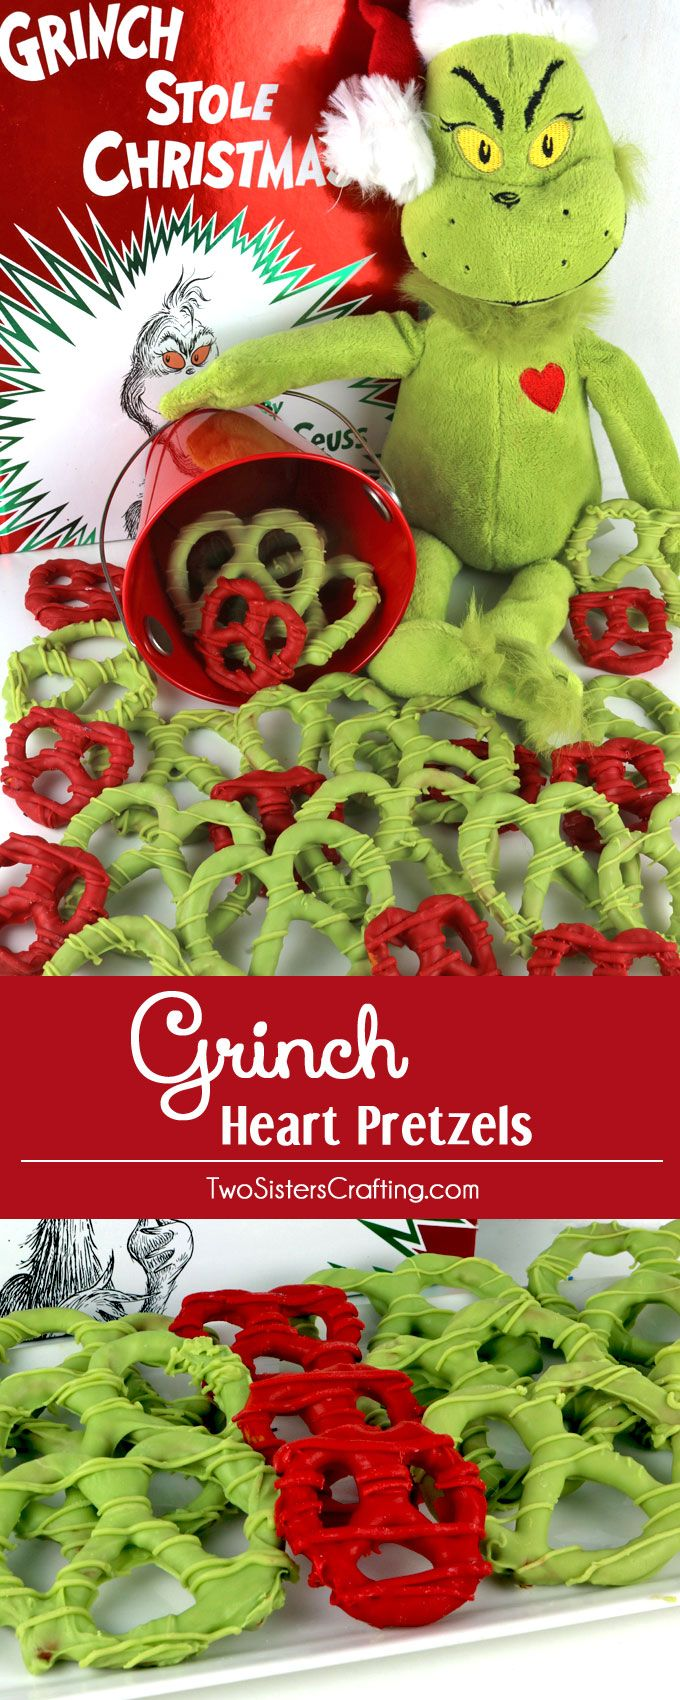 Grinch Heart Pretzels – you'll need pretzels and candy melts to make these sweet and salty Grinch Christmas treats. They are a cute and easy to make Christmas Treat that is perfect for a How the Grinch Stole Christmas family movie night. The kids will love to help make this Grinchy Christmas Dessert. Pin this adorable Christmas Candy for later and follow us for more fun Christmas Food Ideas. ,  Carina du Plessis